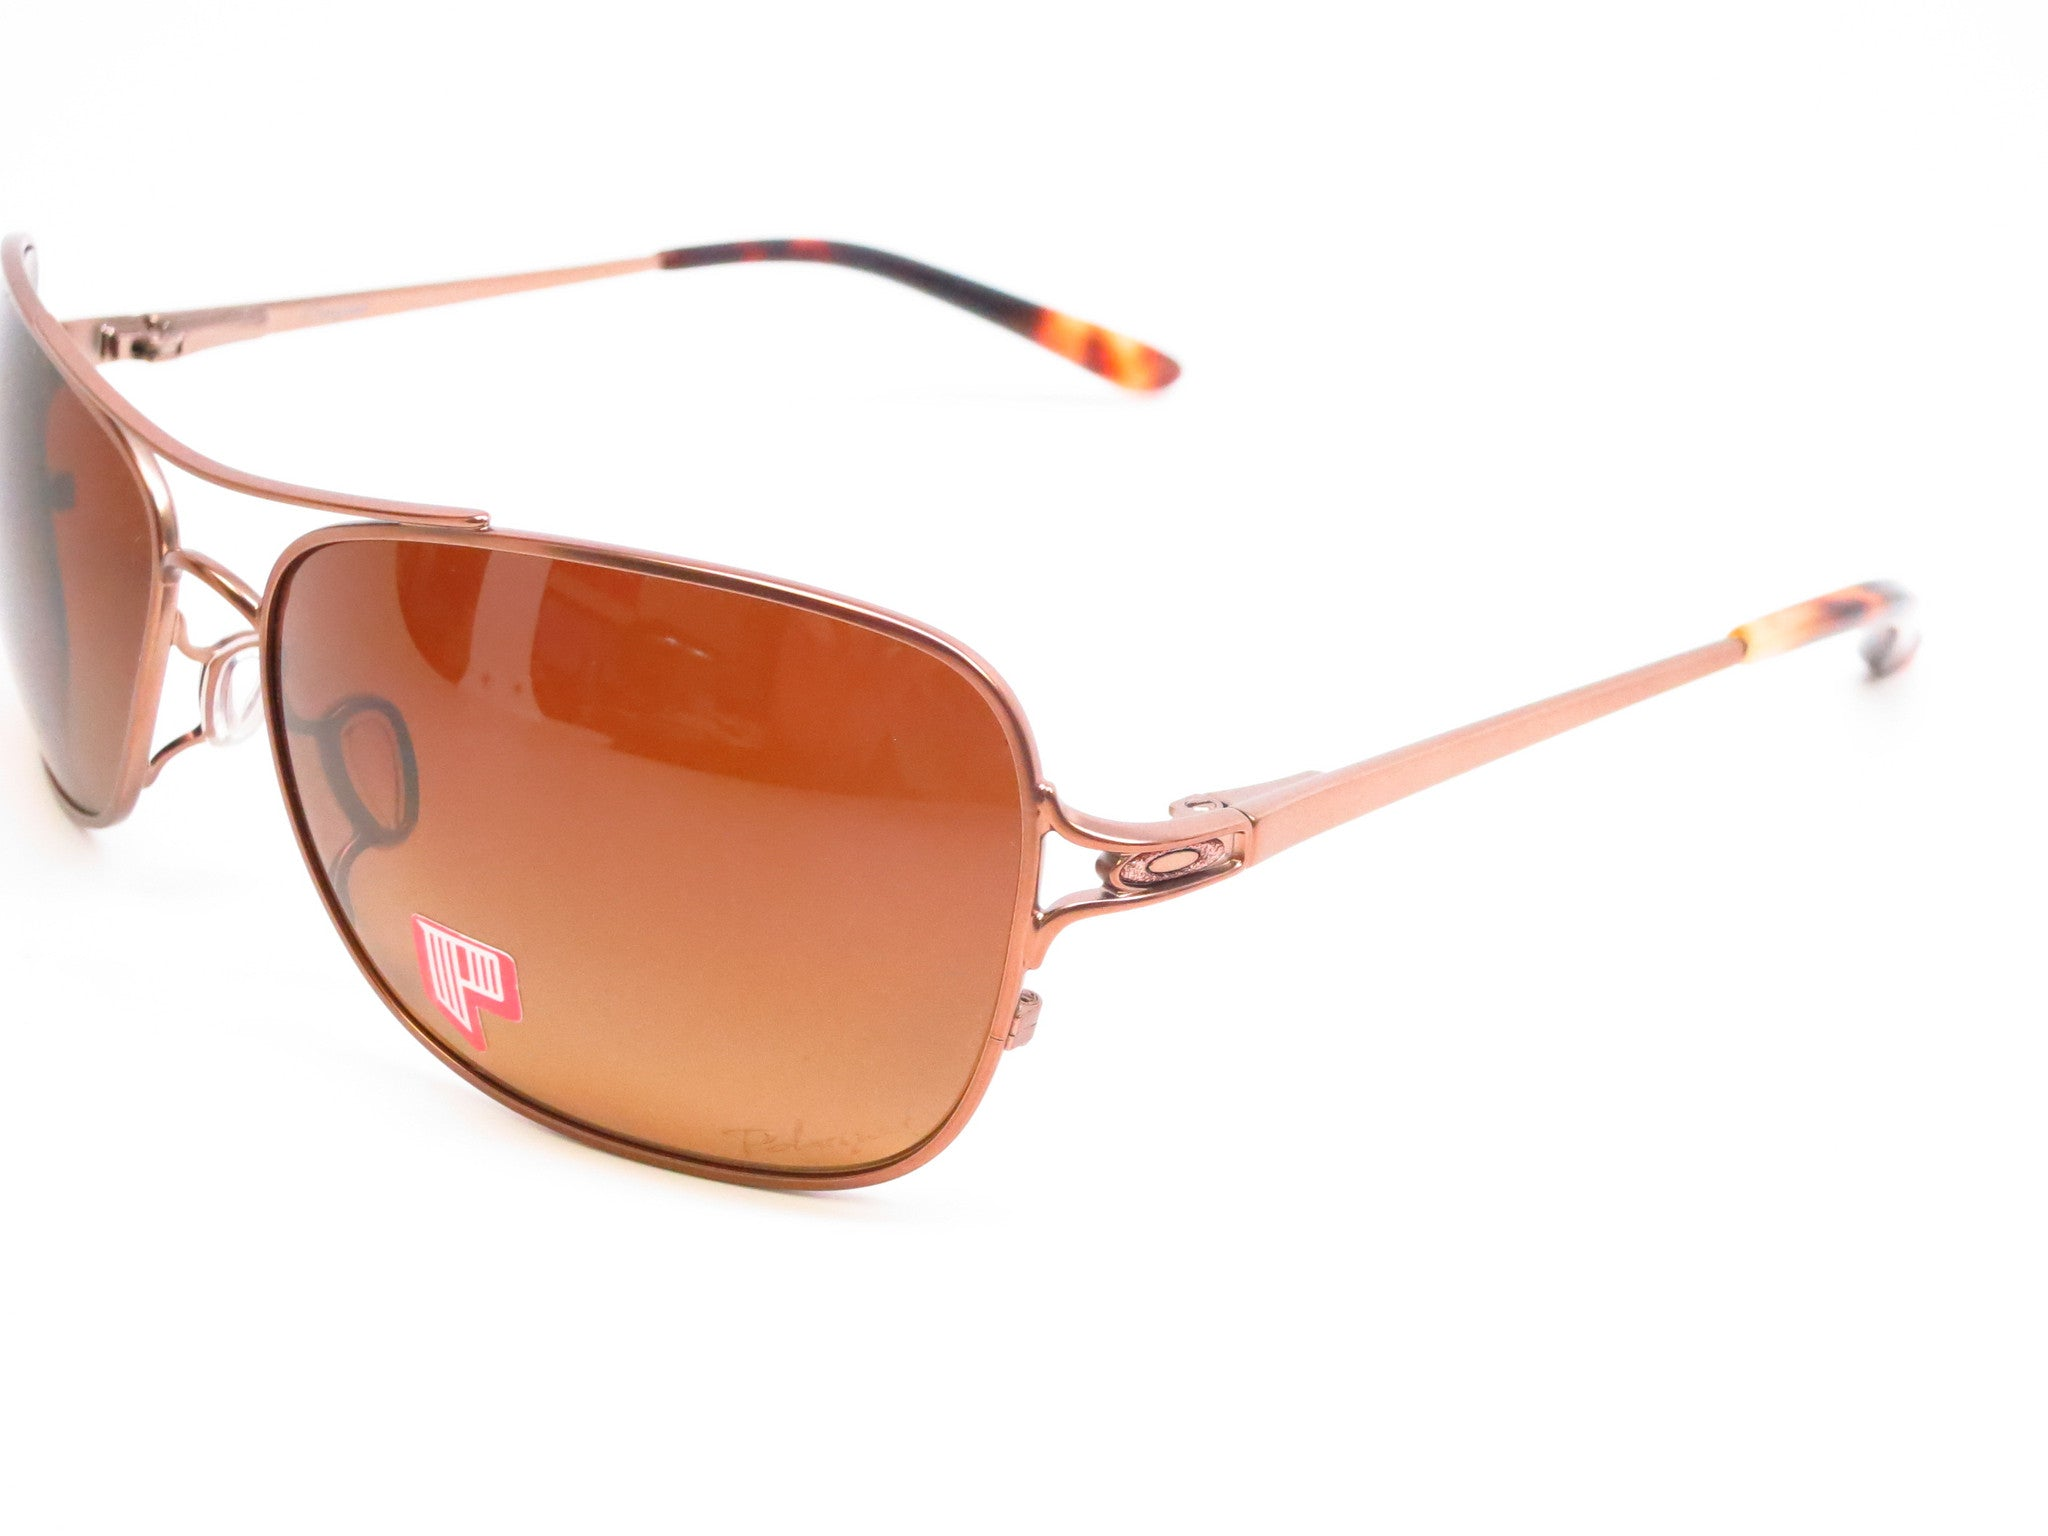 6bc46aa18a Oakley Conquest OO4101-01 Satin Rose Gold Polarized Sunglasses - Eye Heart  Shades - Oakley ...